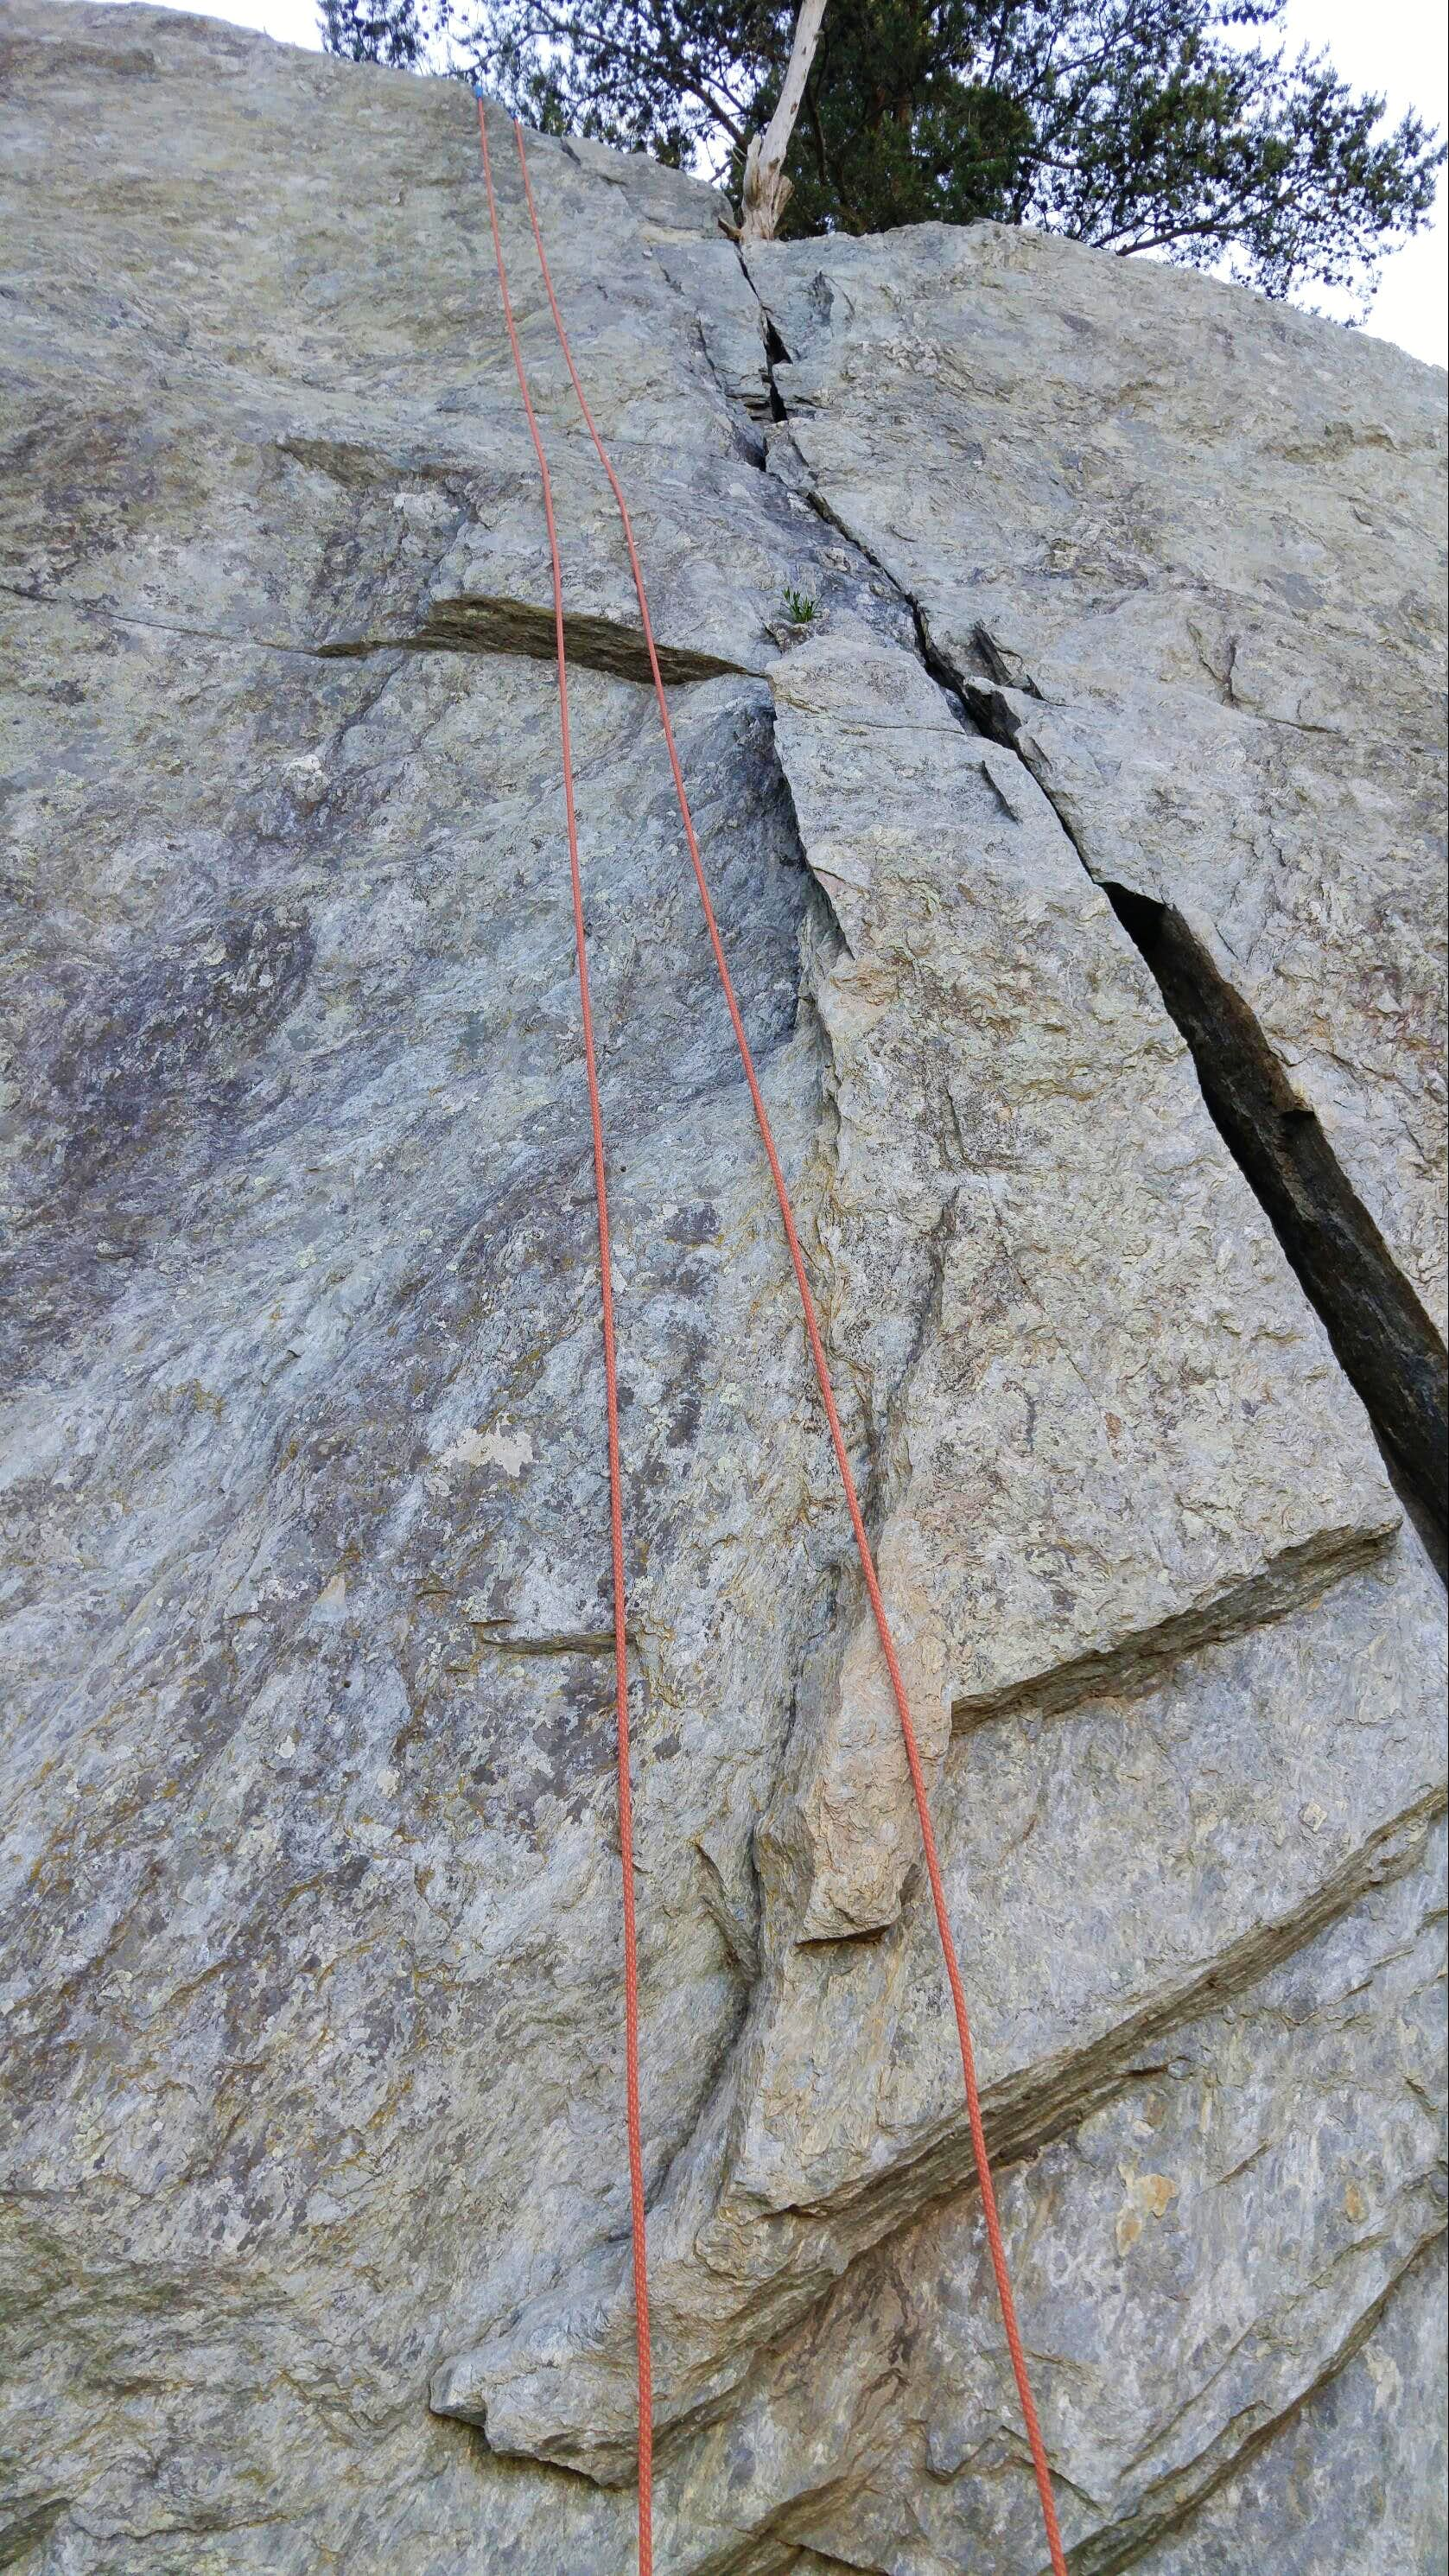 Left of Left Stuff (5.8)